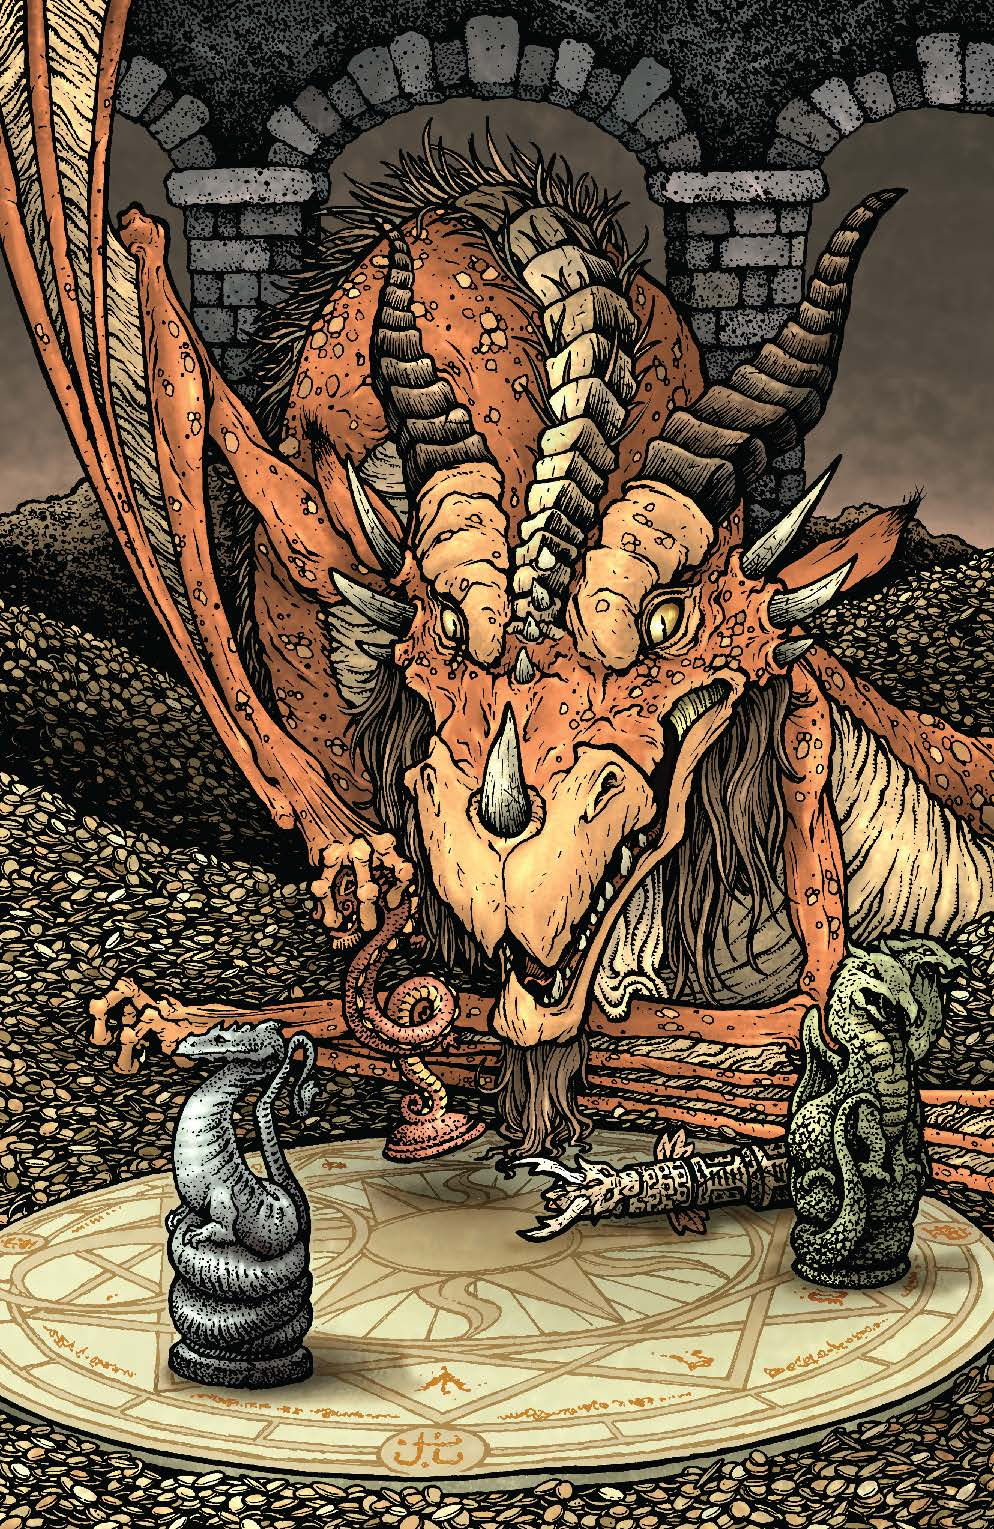 Jim Henson's The Storyteller: Dragons Incentive over